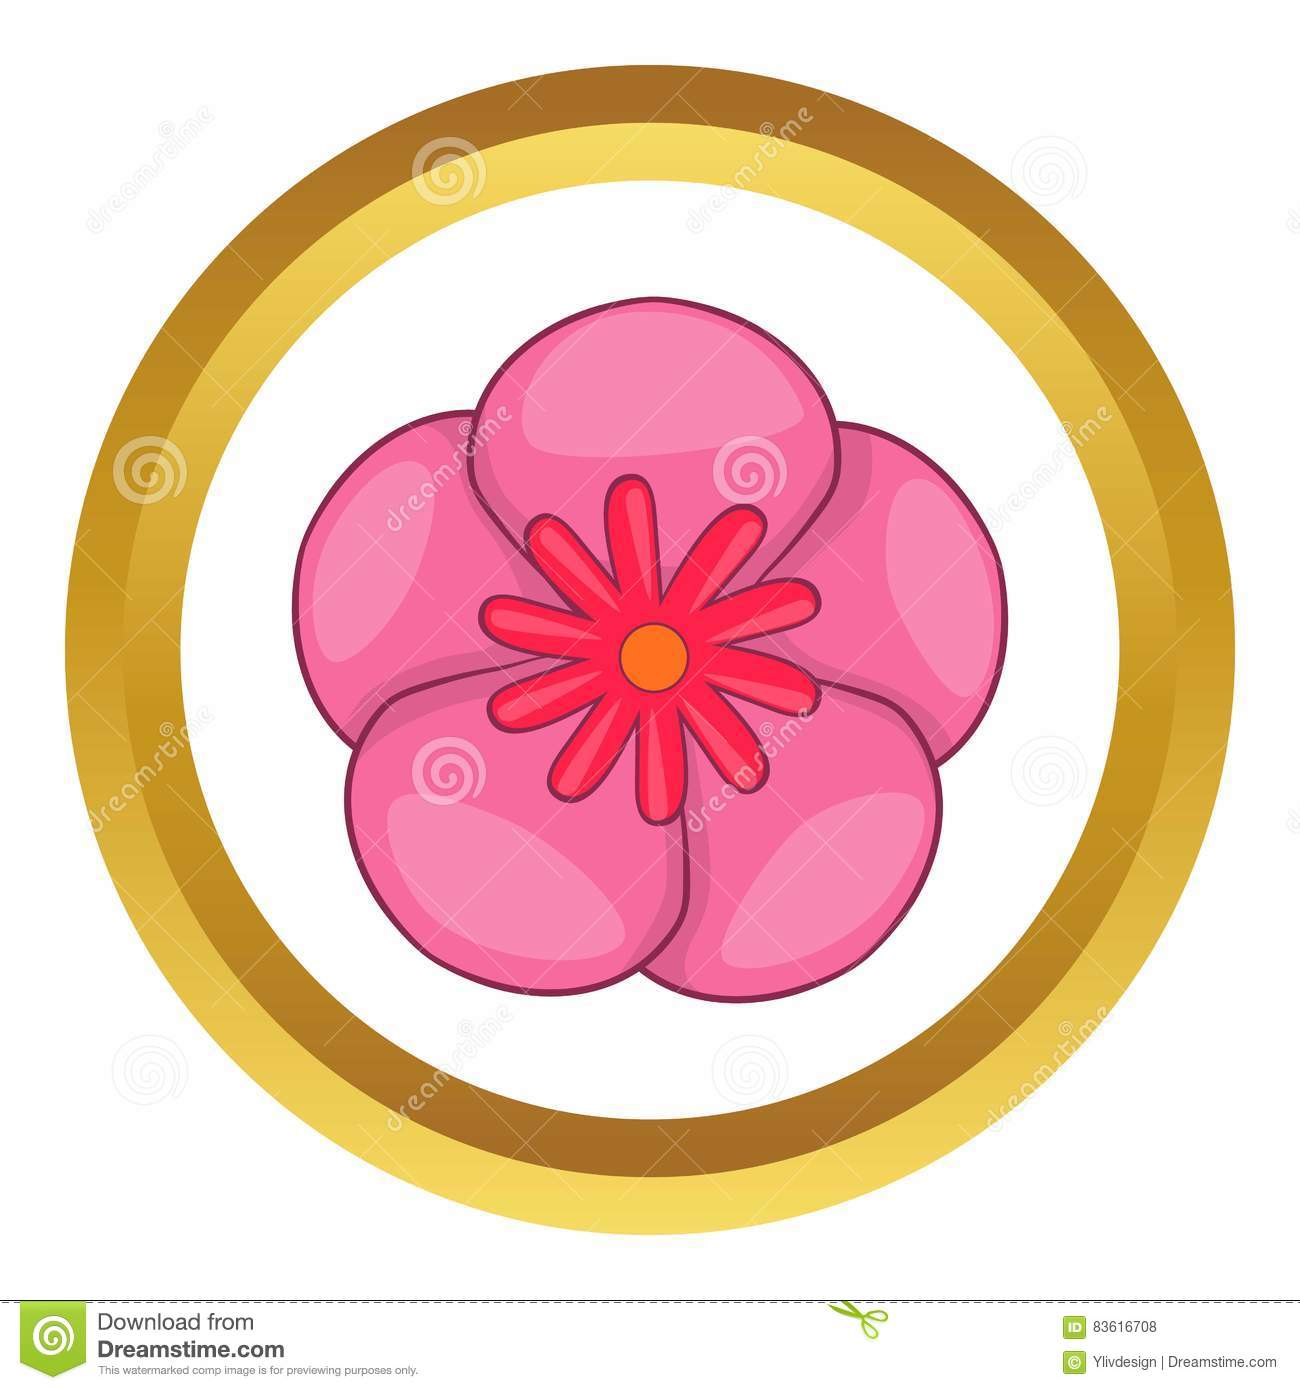 Rose of sharon korean flower icon cartoon style stock vector rose of sharon korean flower vector icon royalty free stock photos dhlflorist Images